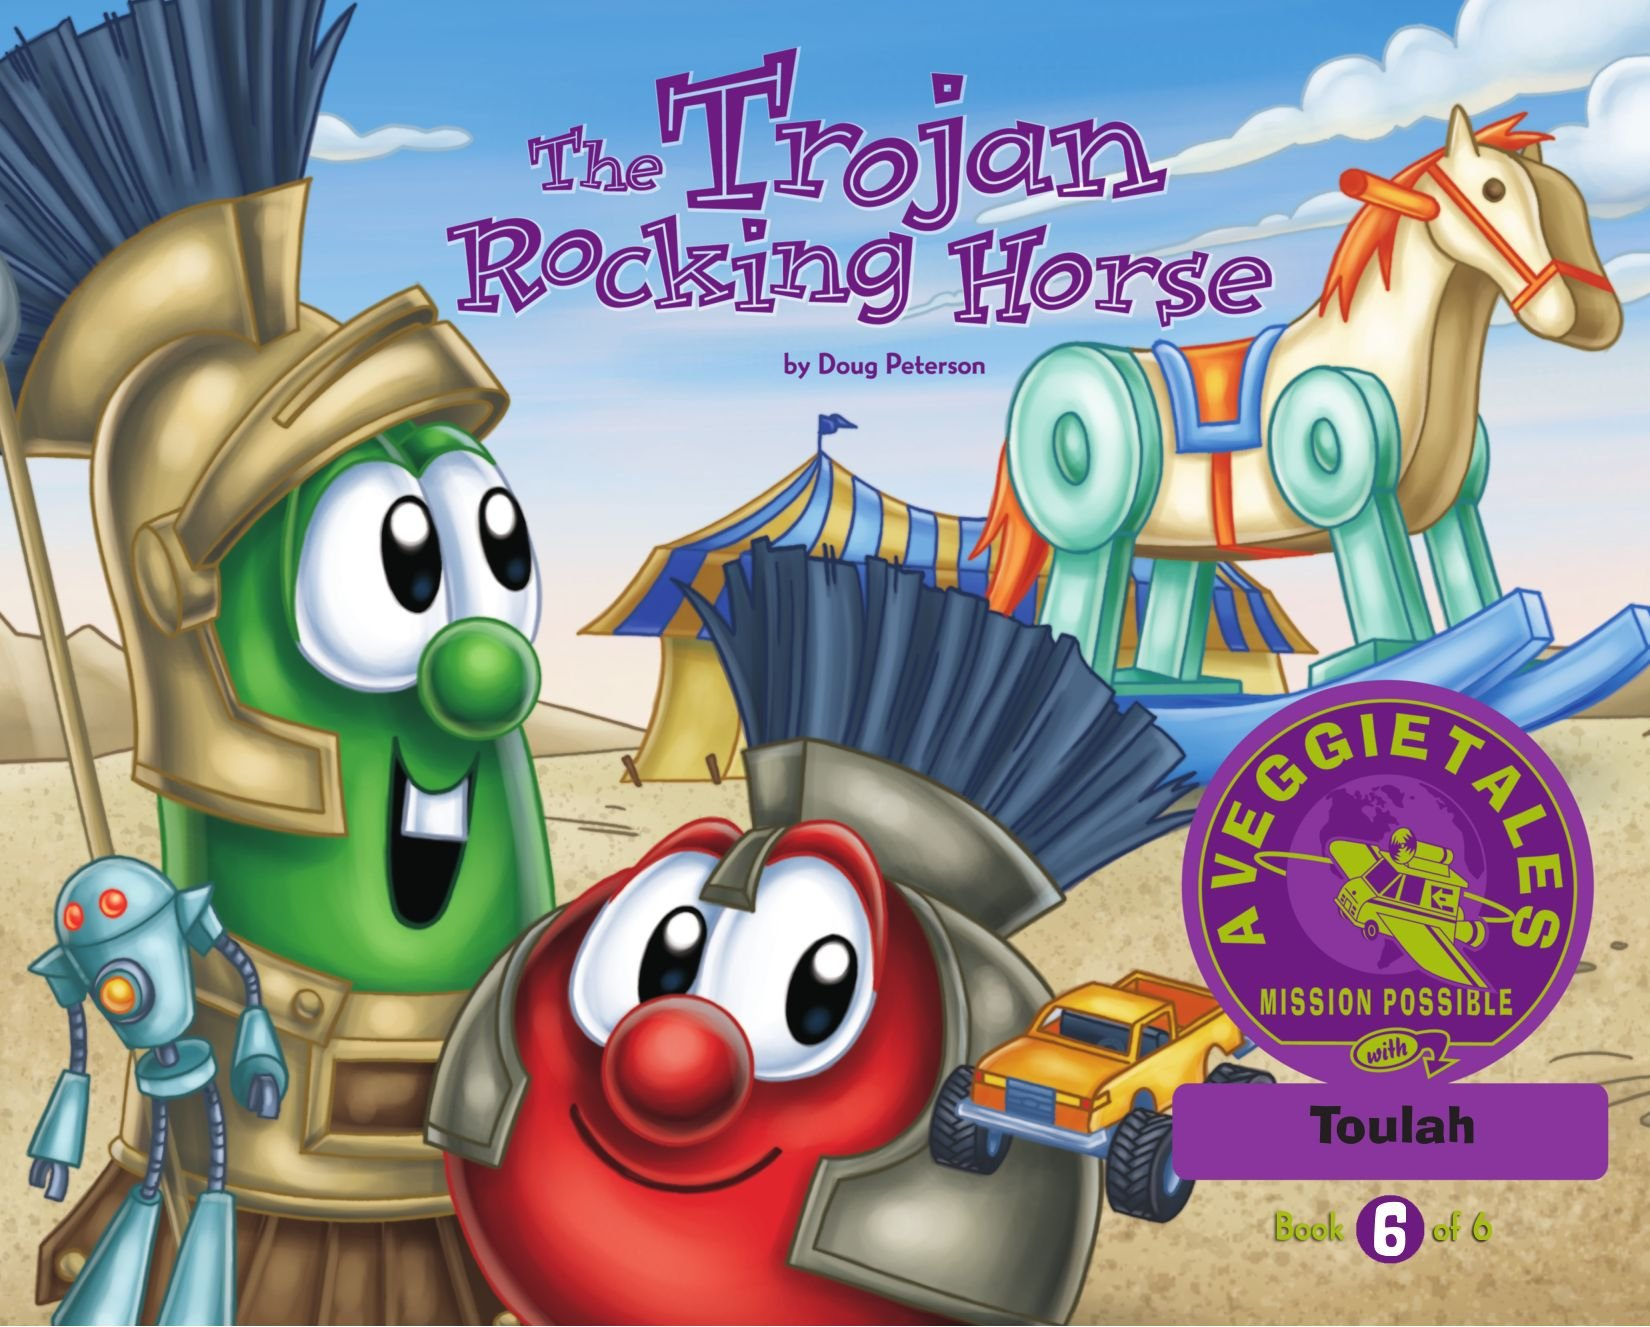 Download The Trojan Rocking Horse - VeggieTales Mission Possible Adventure Series #6: Personalized for Toulah (Girl) ebook